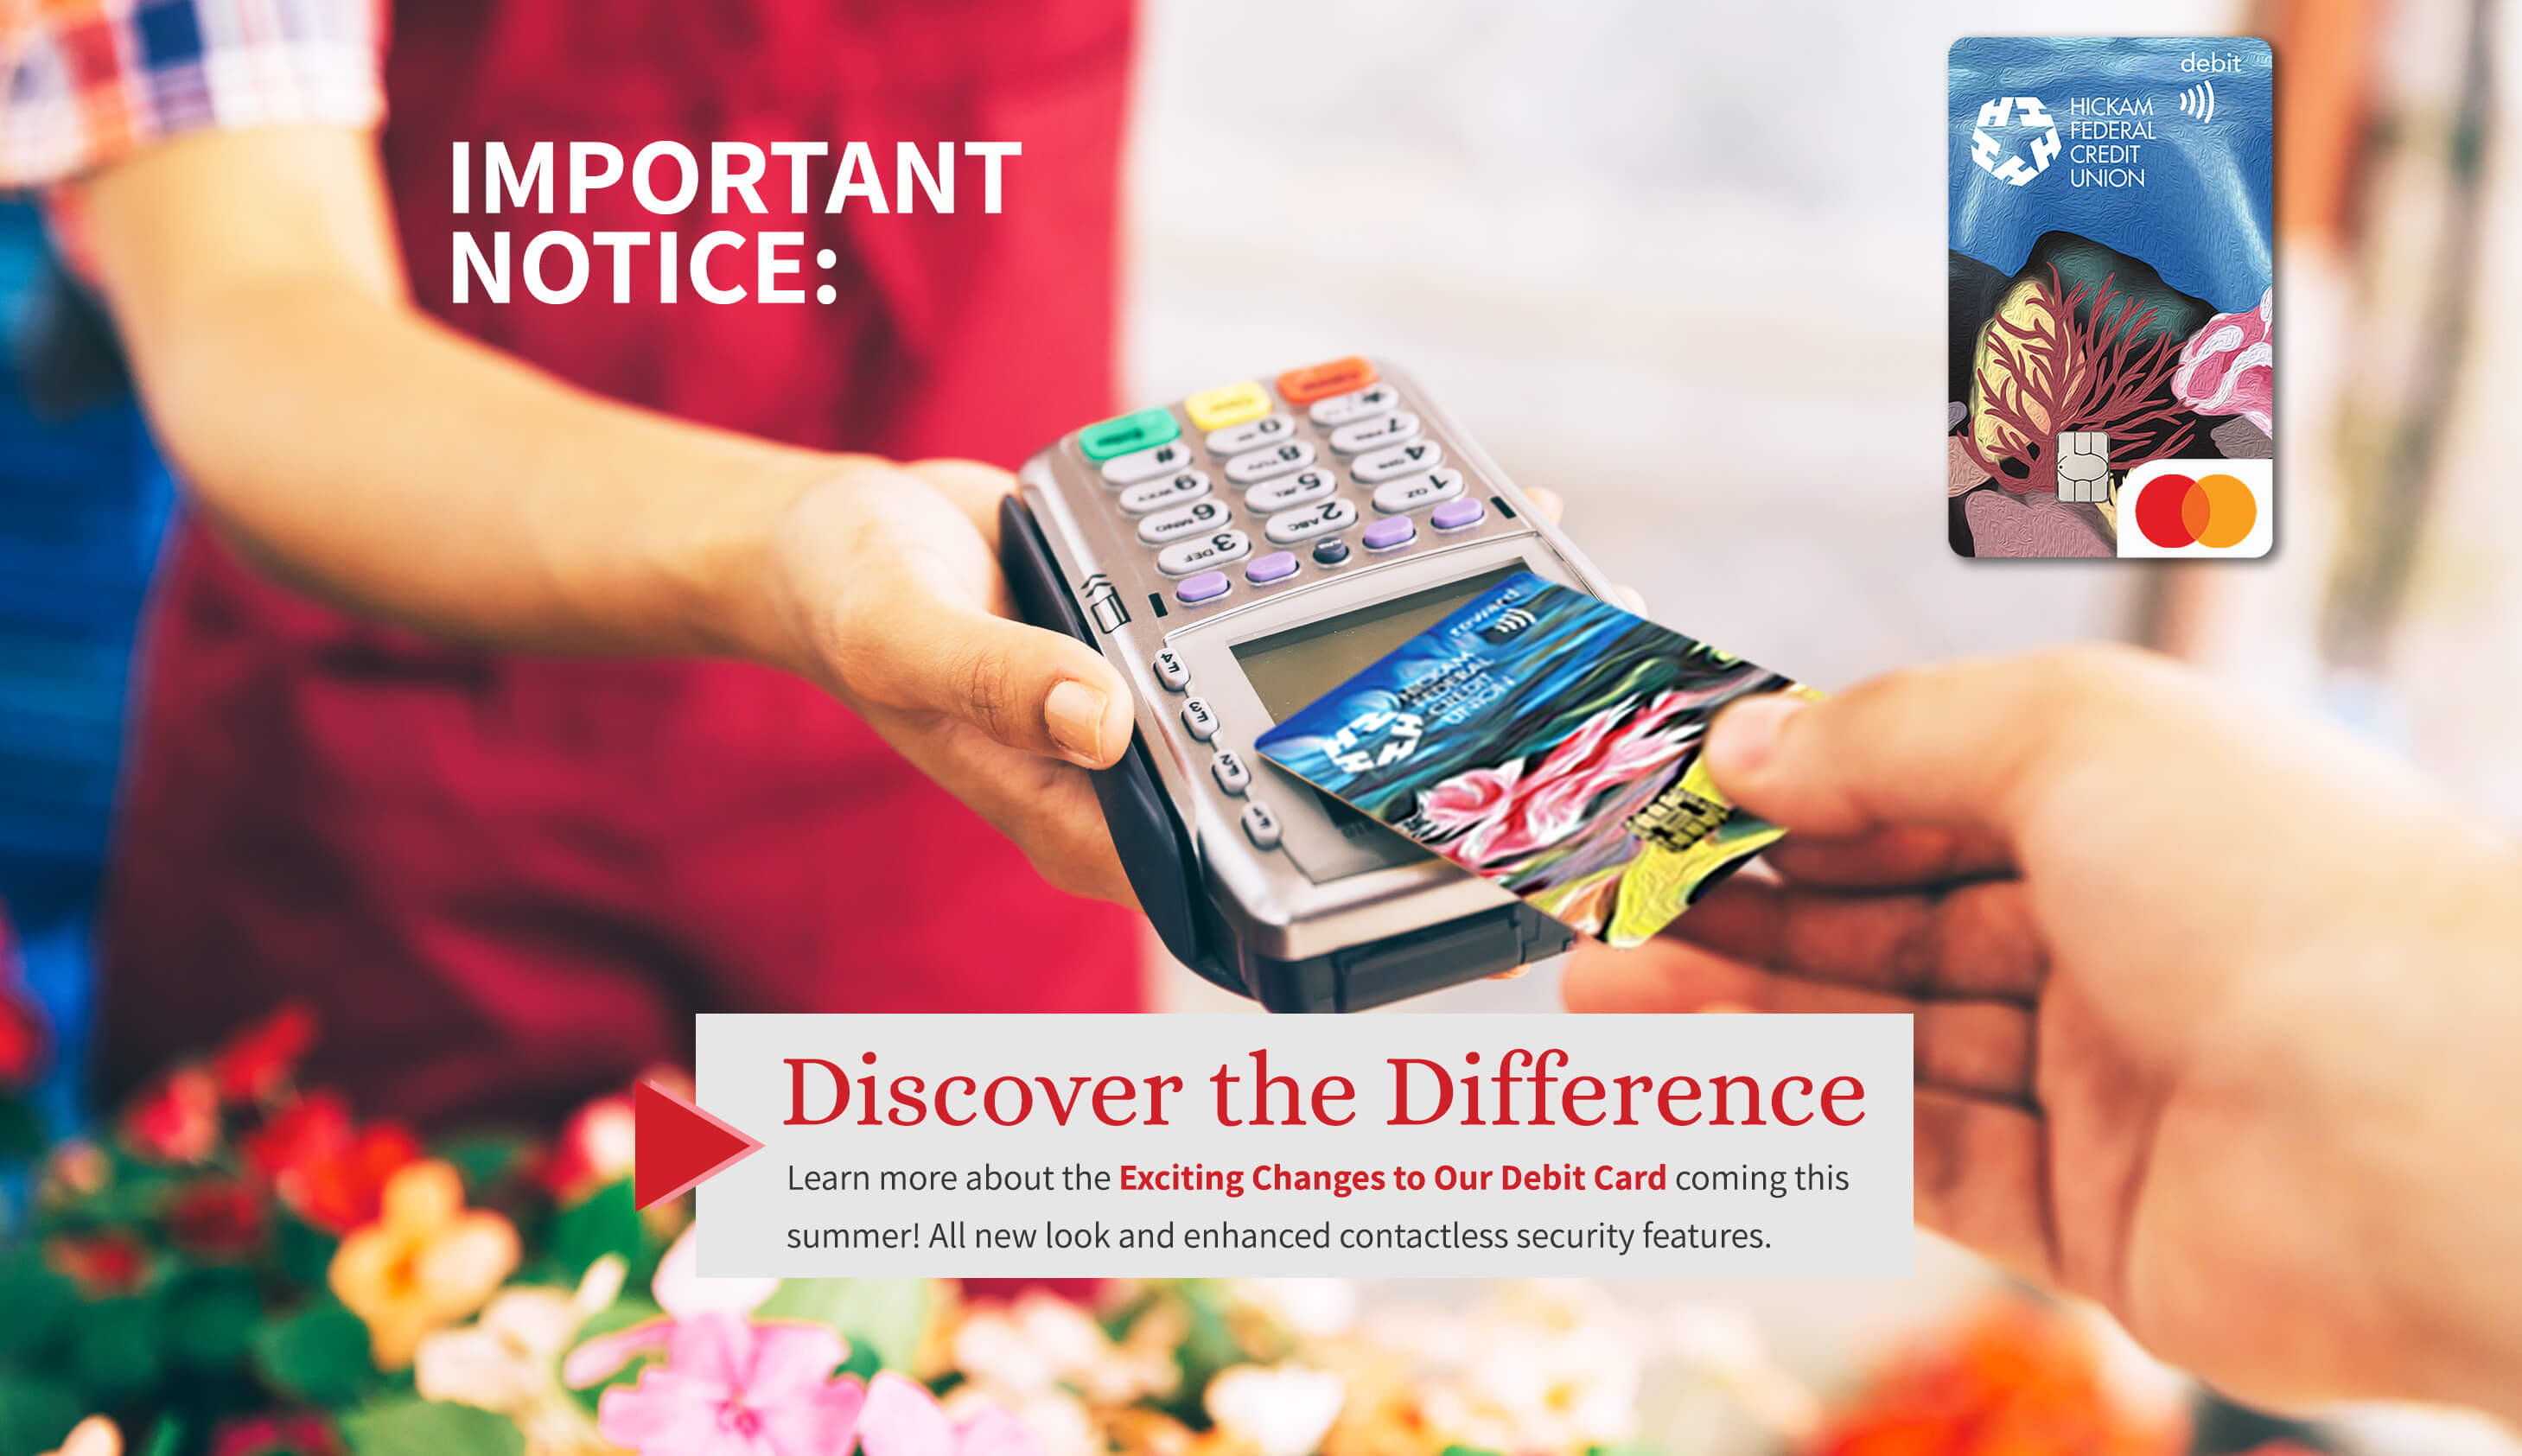 Discover the difference. Learn more about the exciting changes to our debit card coming this summer. All new look and enhanced contactless security features.